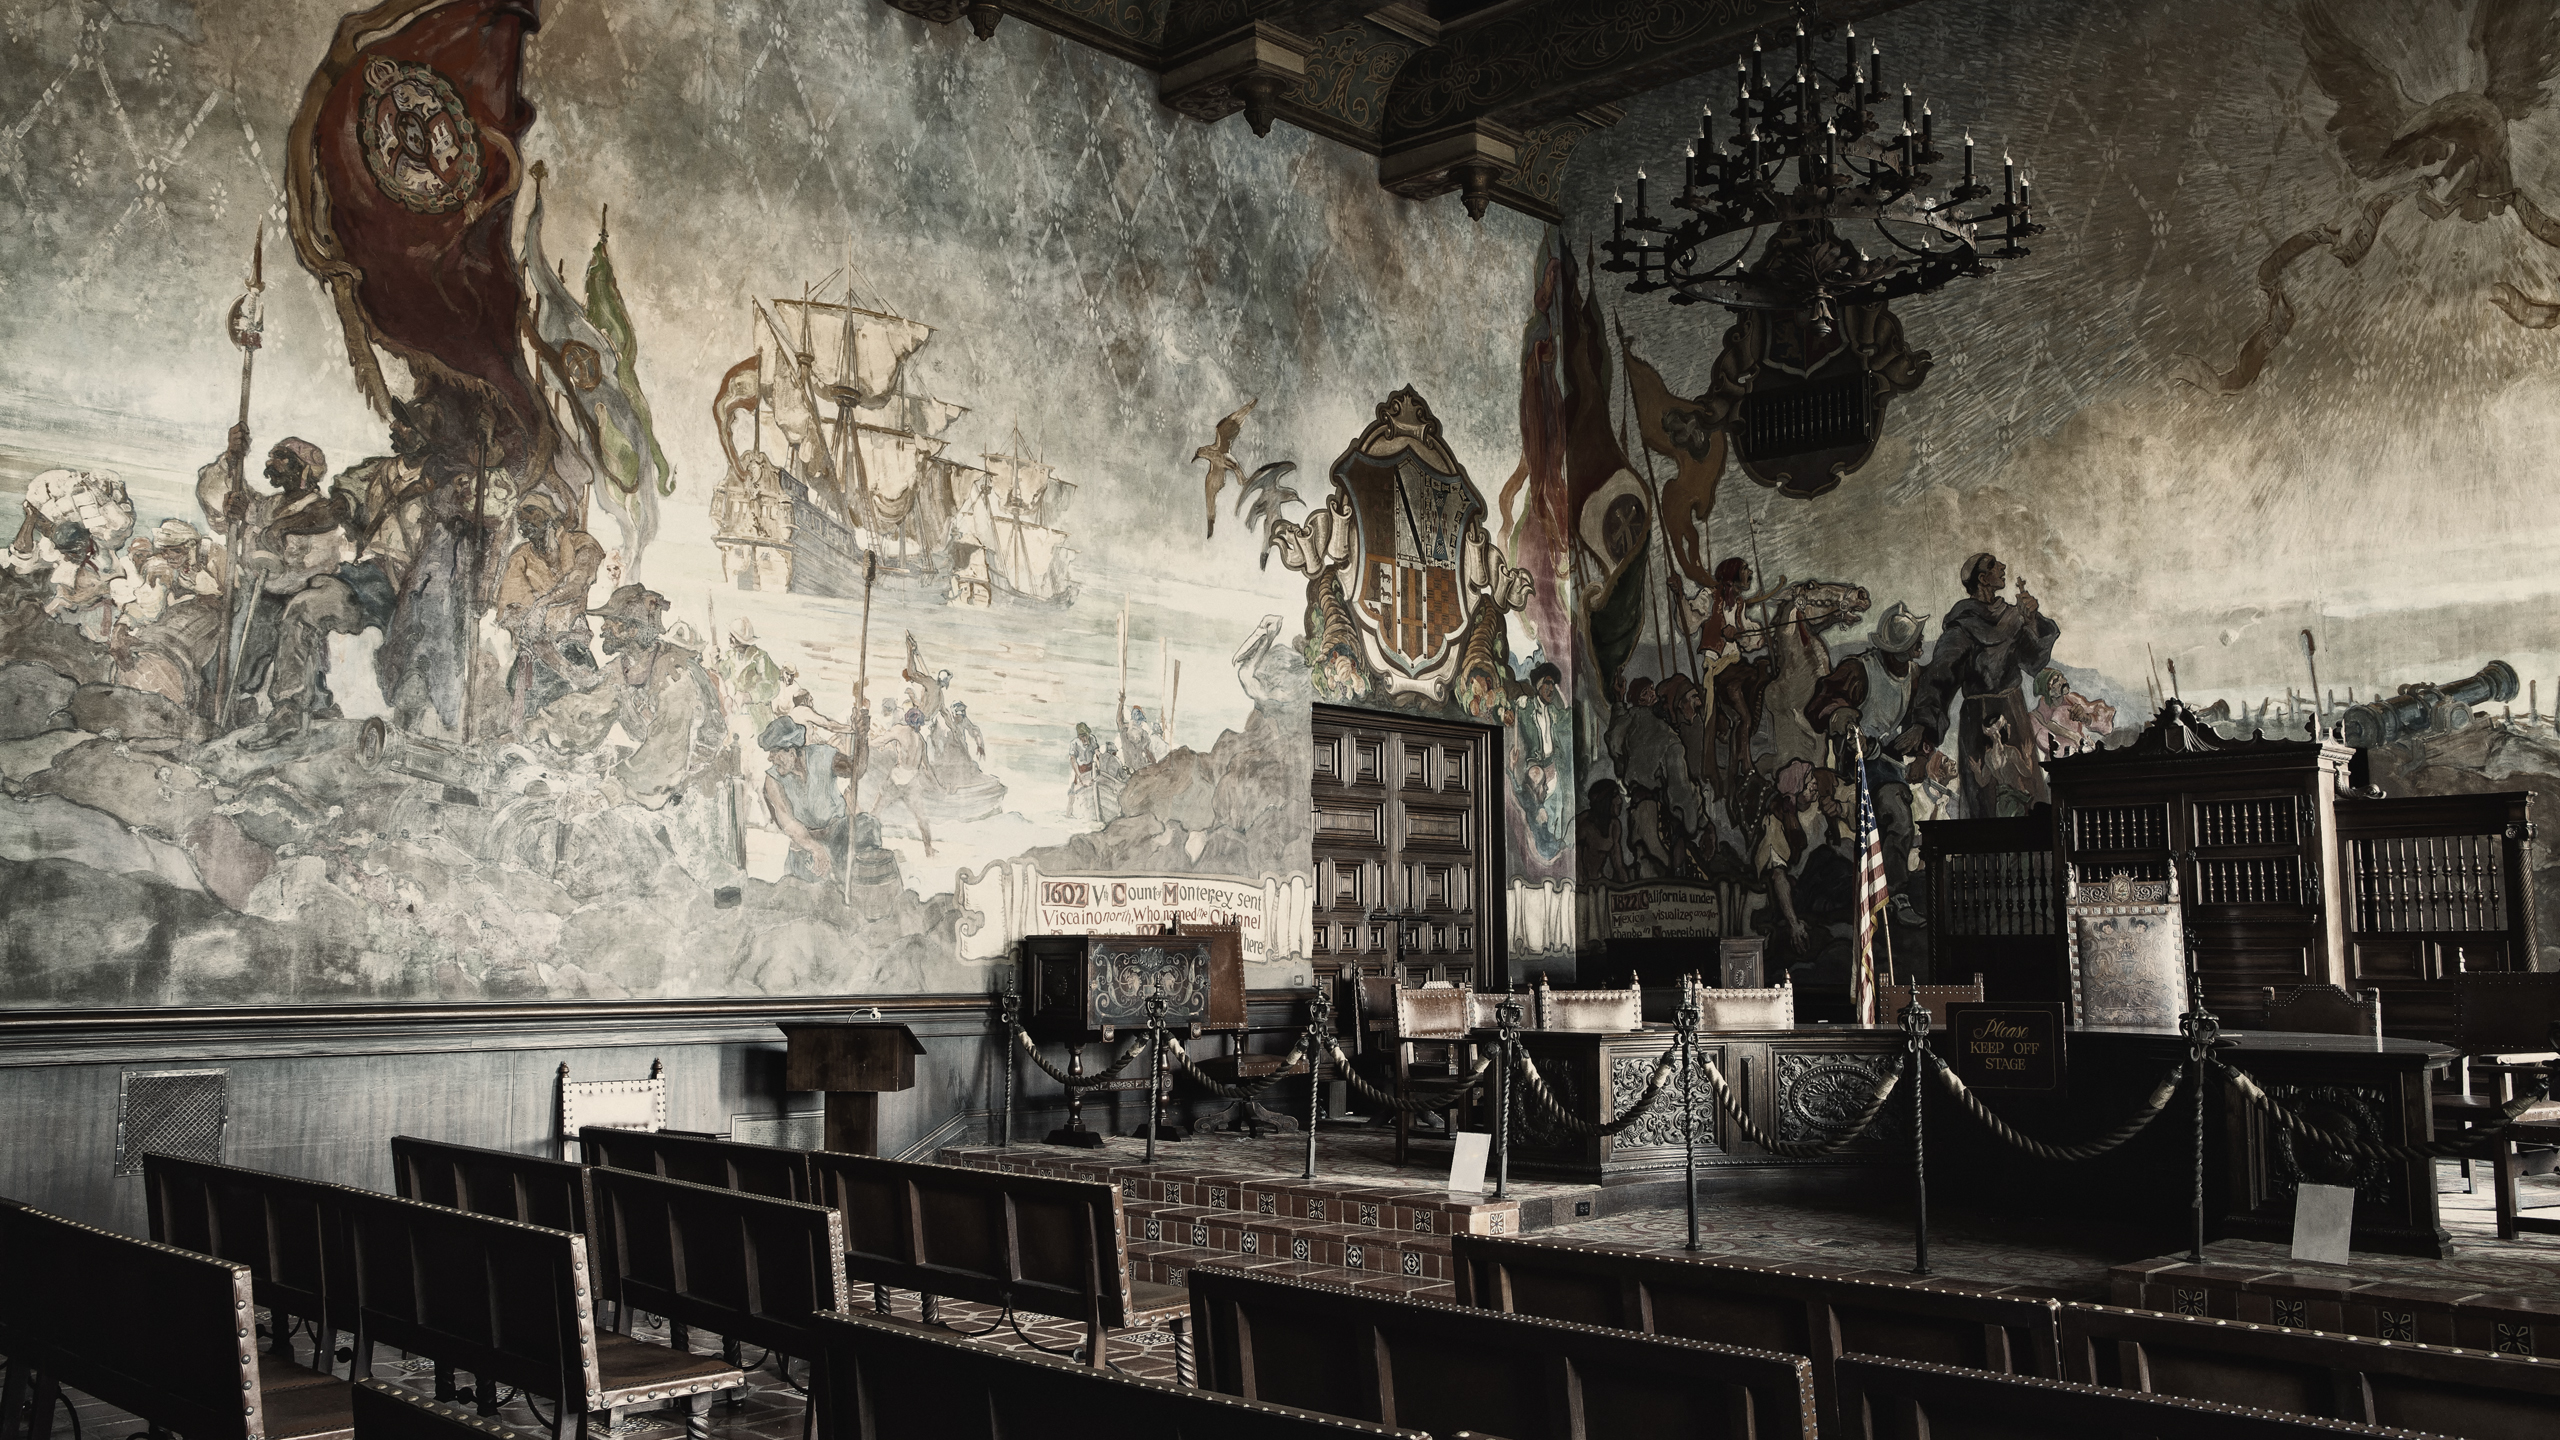 courthouse_mural_2560x1440